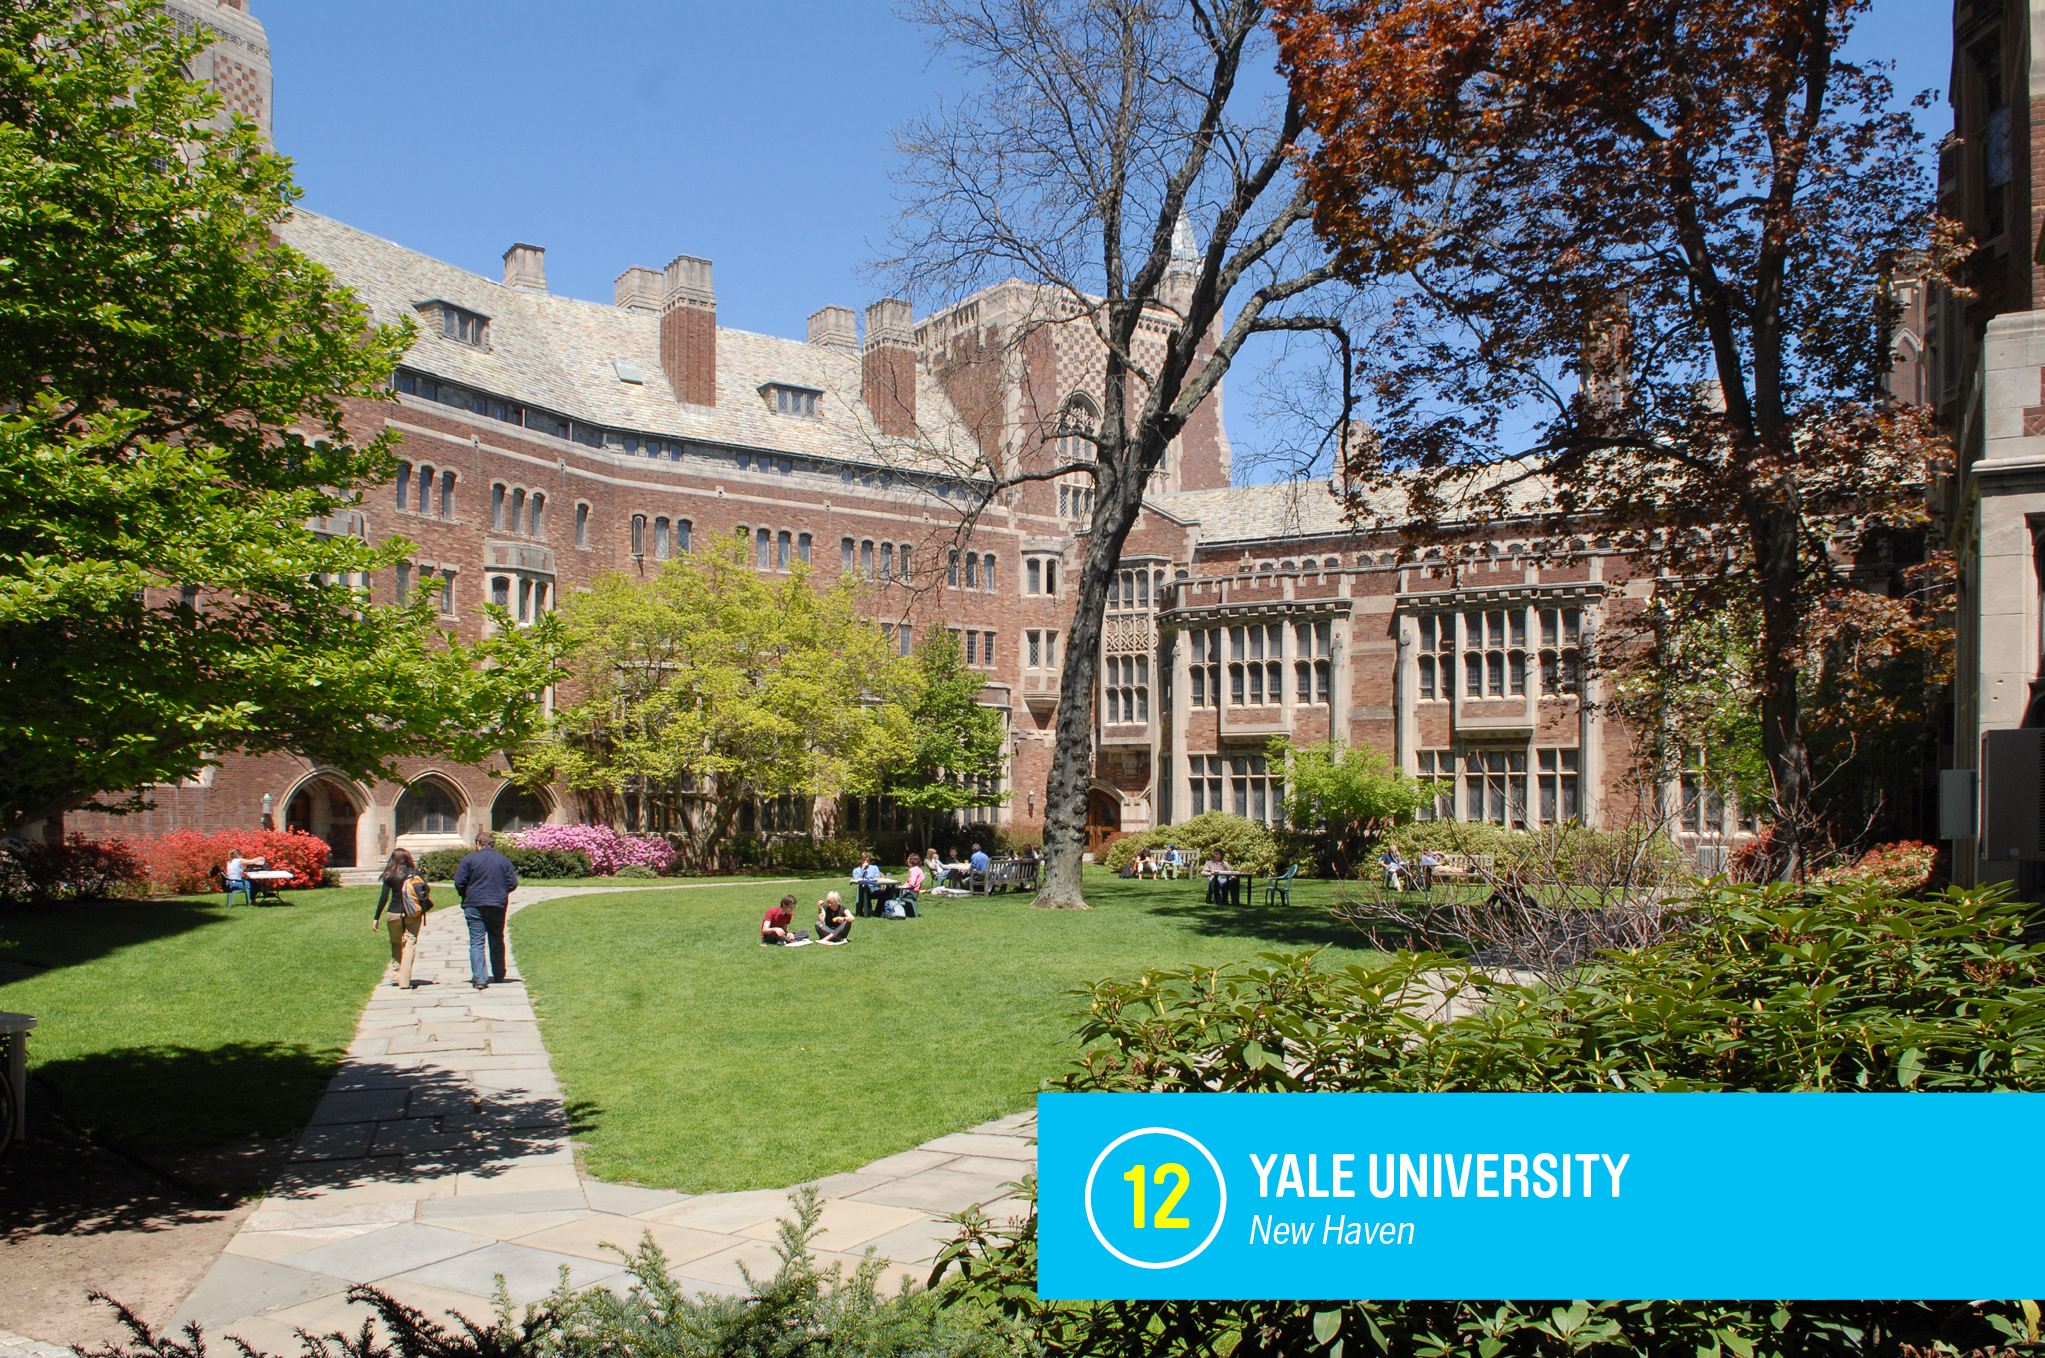 """Like its fellow high-ranking Ivy League peers, Princeton and Harvard, <a href=""""https://money.com/best-colleges/profile/yale-university/"""" target=""""_blank"""">Yale</a> is highly selective. But for students who are admitted, the college promises a very generous financial aid package and courses taught by some of the world's most extraordinary academics. <a href=""""https://money.com/best-colleges/profile/yale-university/"""" target=""""_blank"""">FULL PROFILE</a>"""